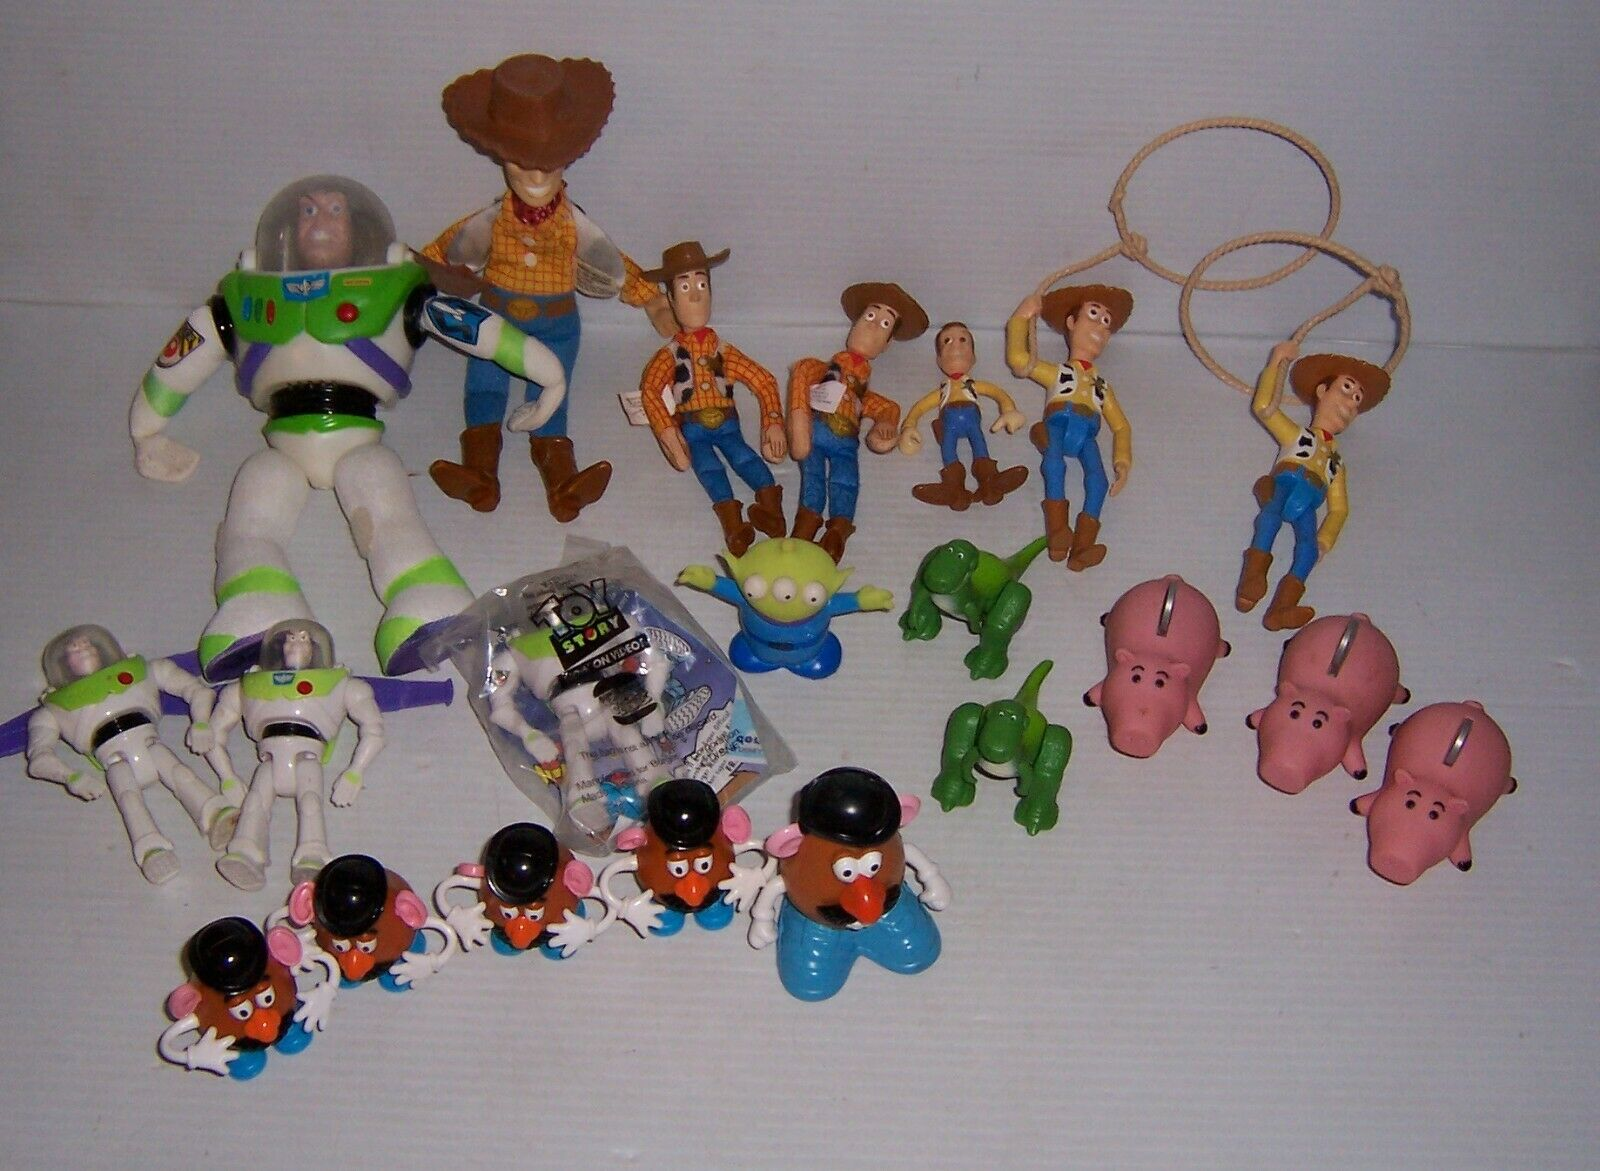 Lot of 1990s Burger King Toy Story Toys Buzz, Woody, Mr. Potato Head, Rex, Hamm